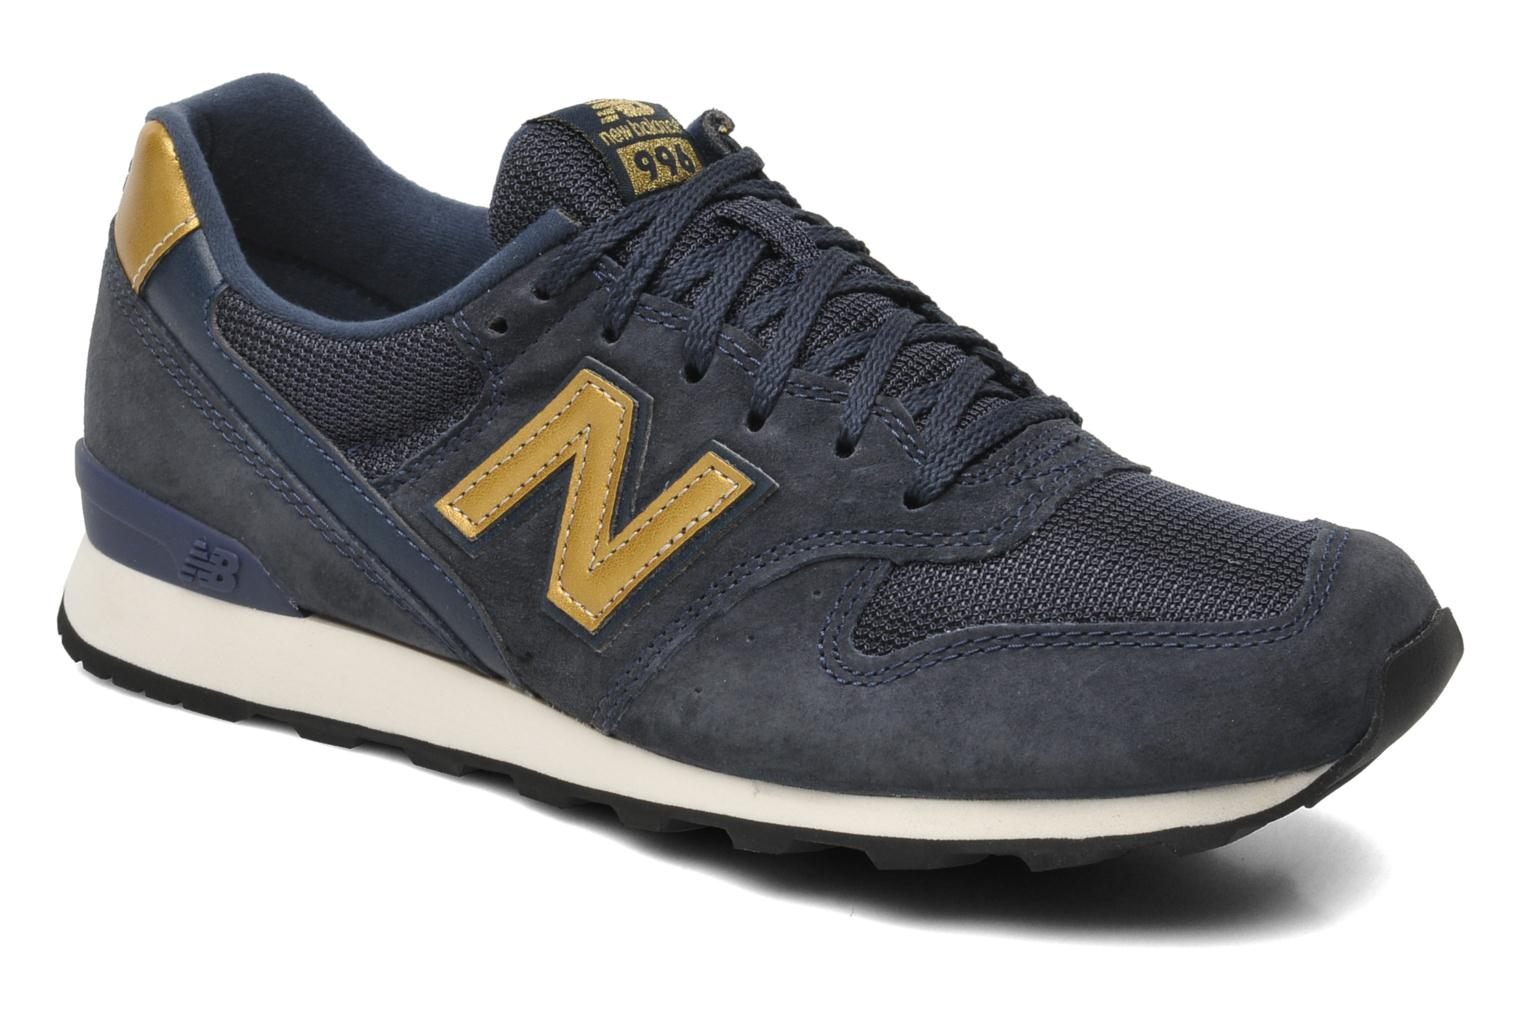 new balance wr996 trainers in blue at 201554. Black Bedroom Furniture Sets. Home Design Ideas